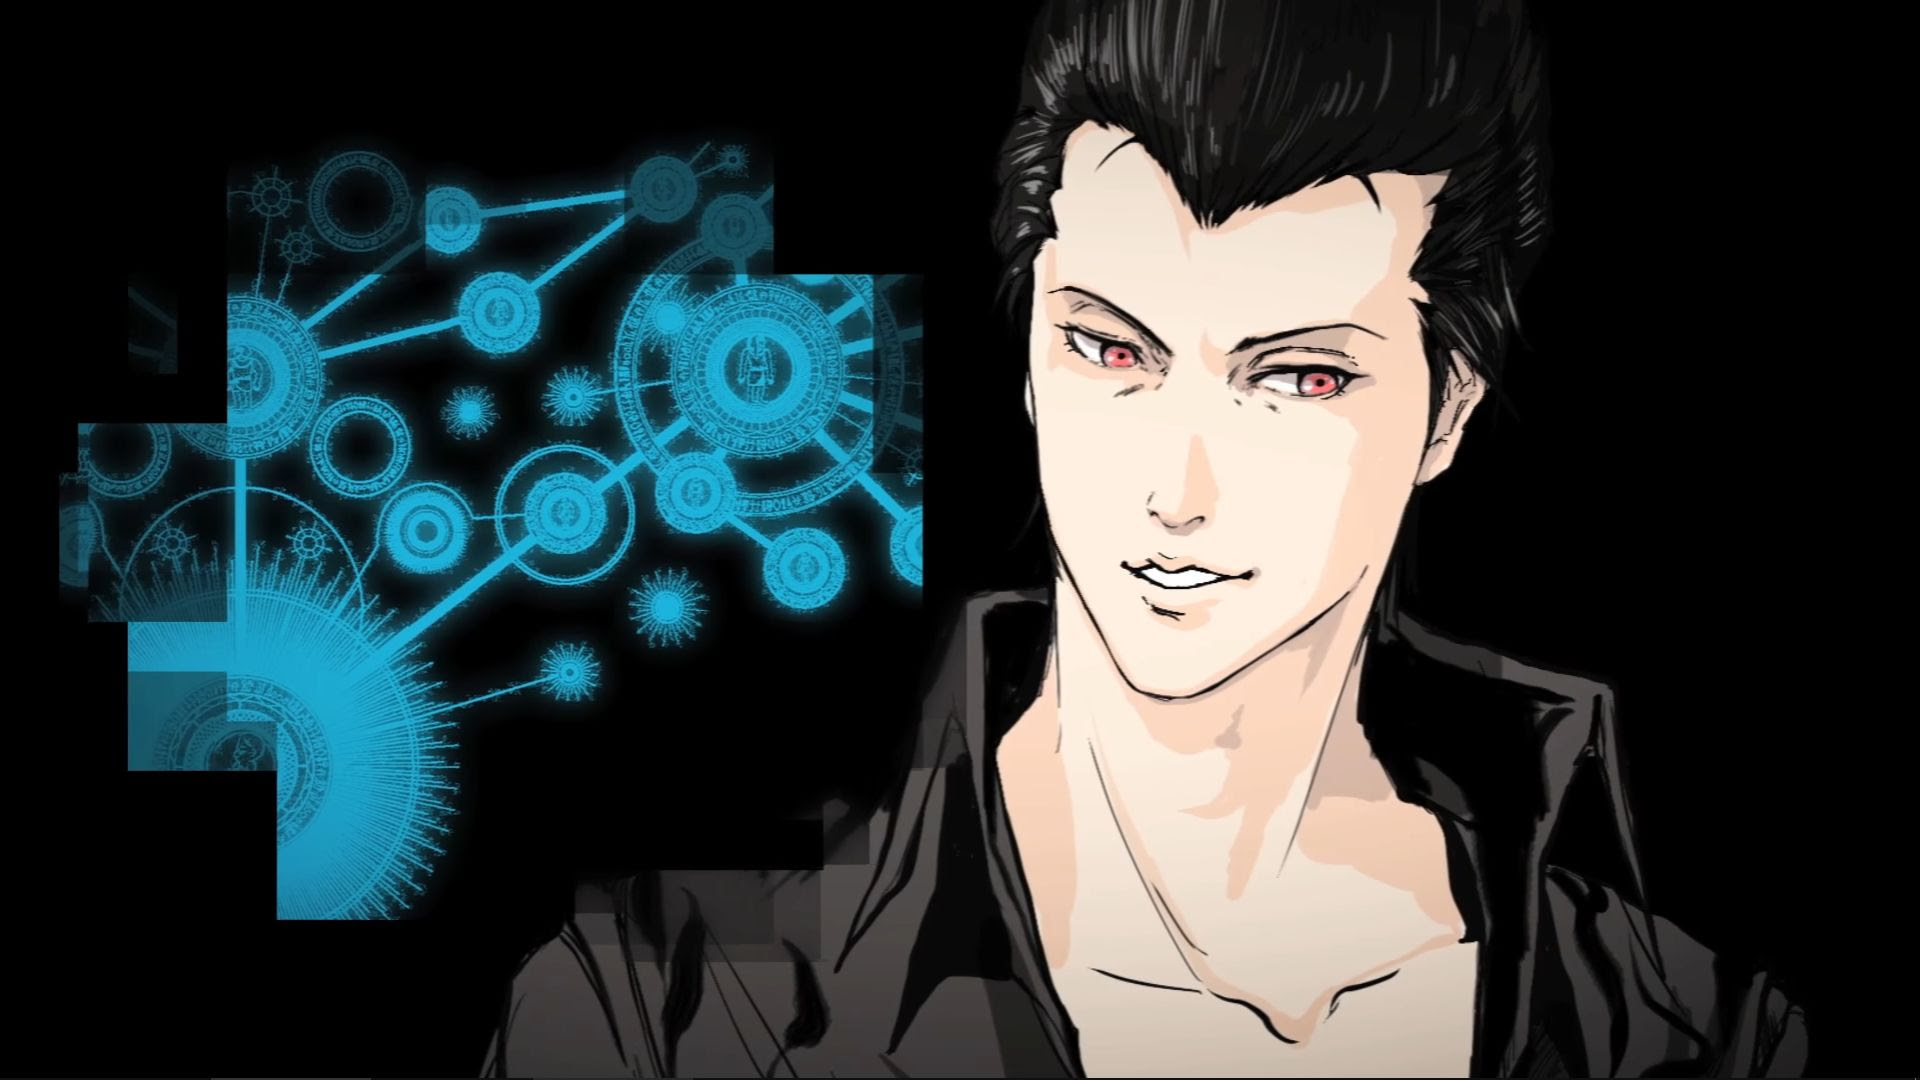 El Shaddai spiritual successor, The Lost Child, announced screenshot